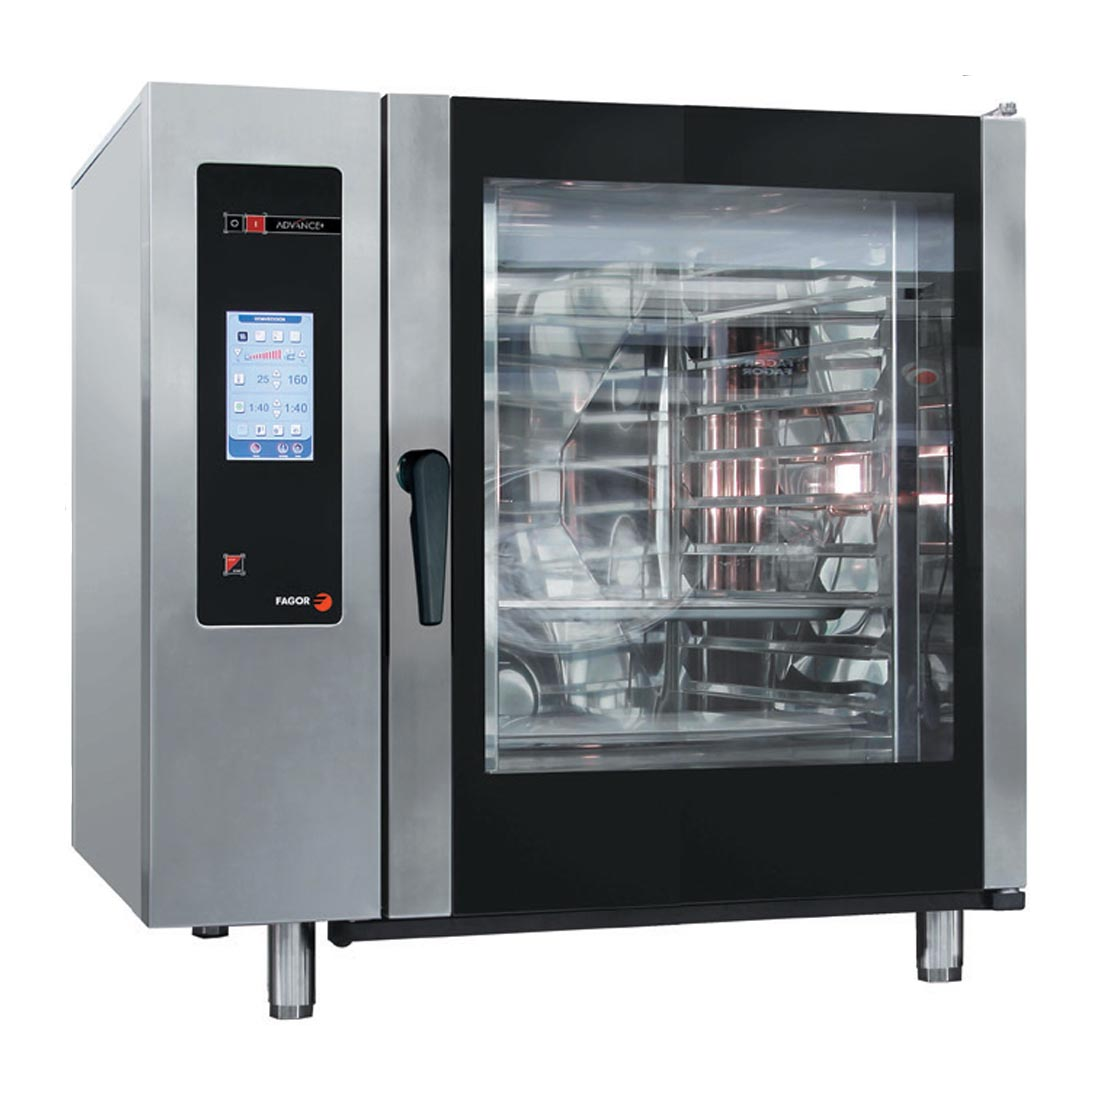 Fagor Advanced Plus Gas 10 Trays Touch Screen Control Combi Oven with Cleaning System - APG-101